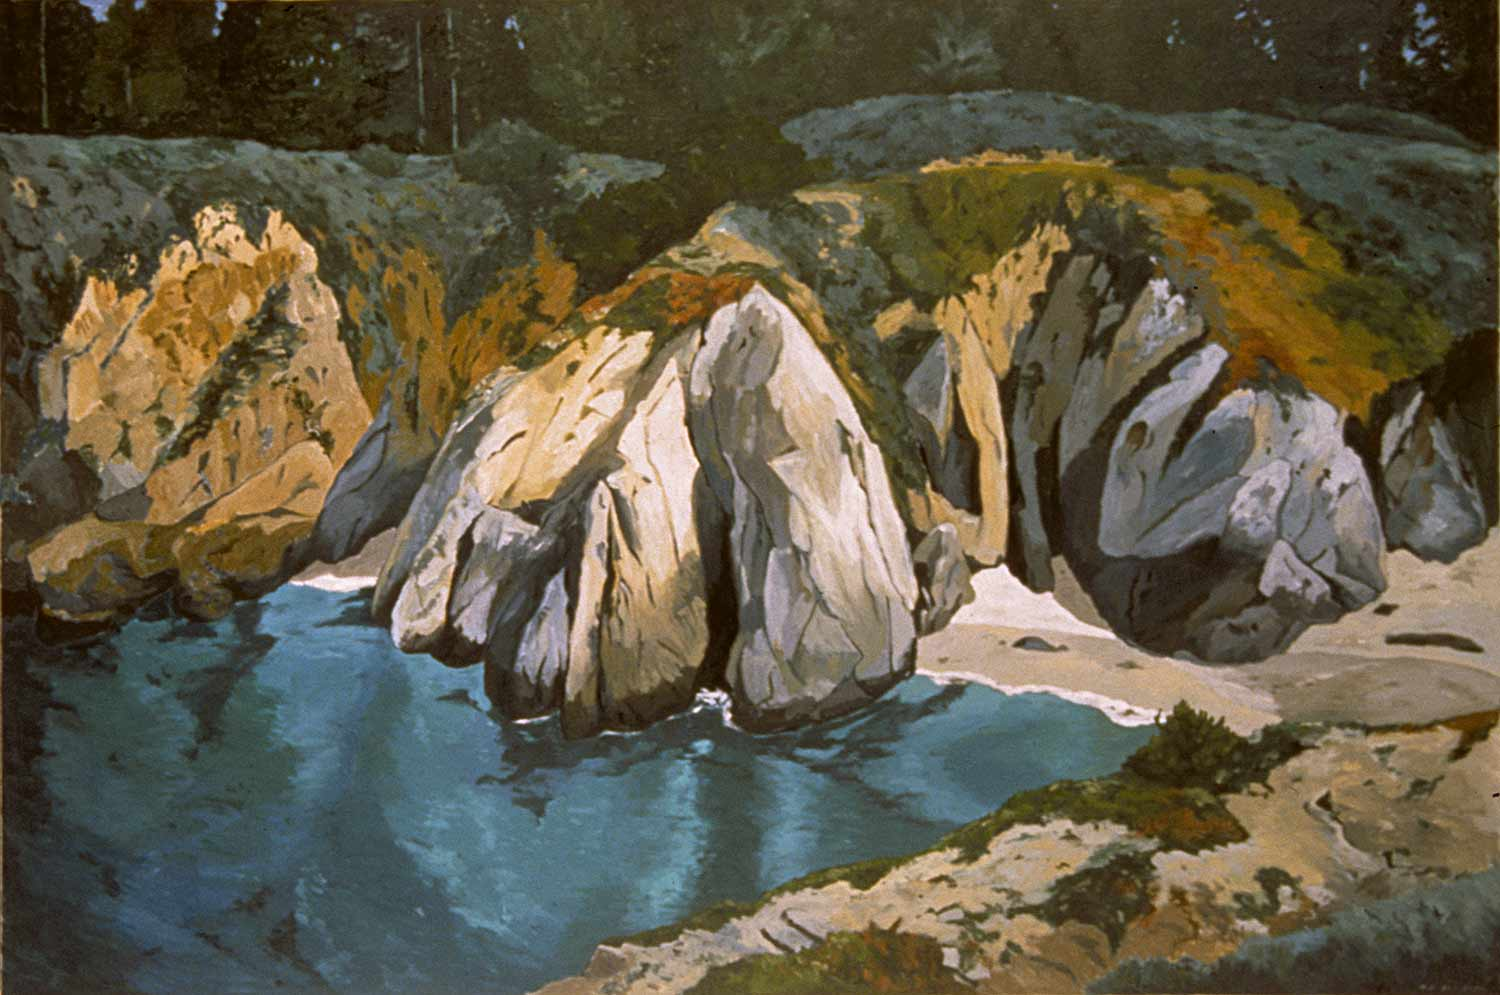 Arched Rock, Point Lobos, Oil pastel on paper, Paintings of California by Mary Alice Copp